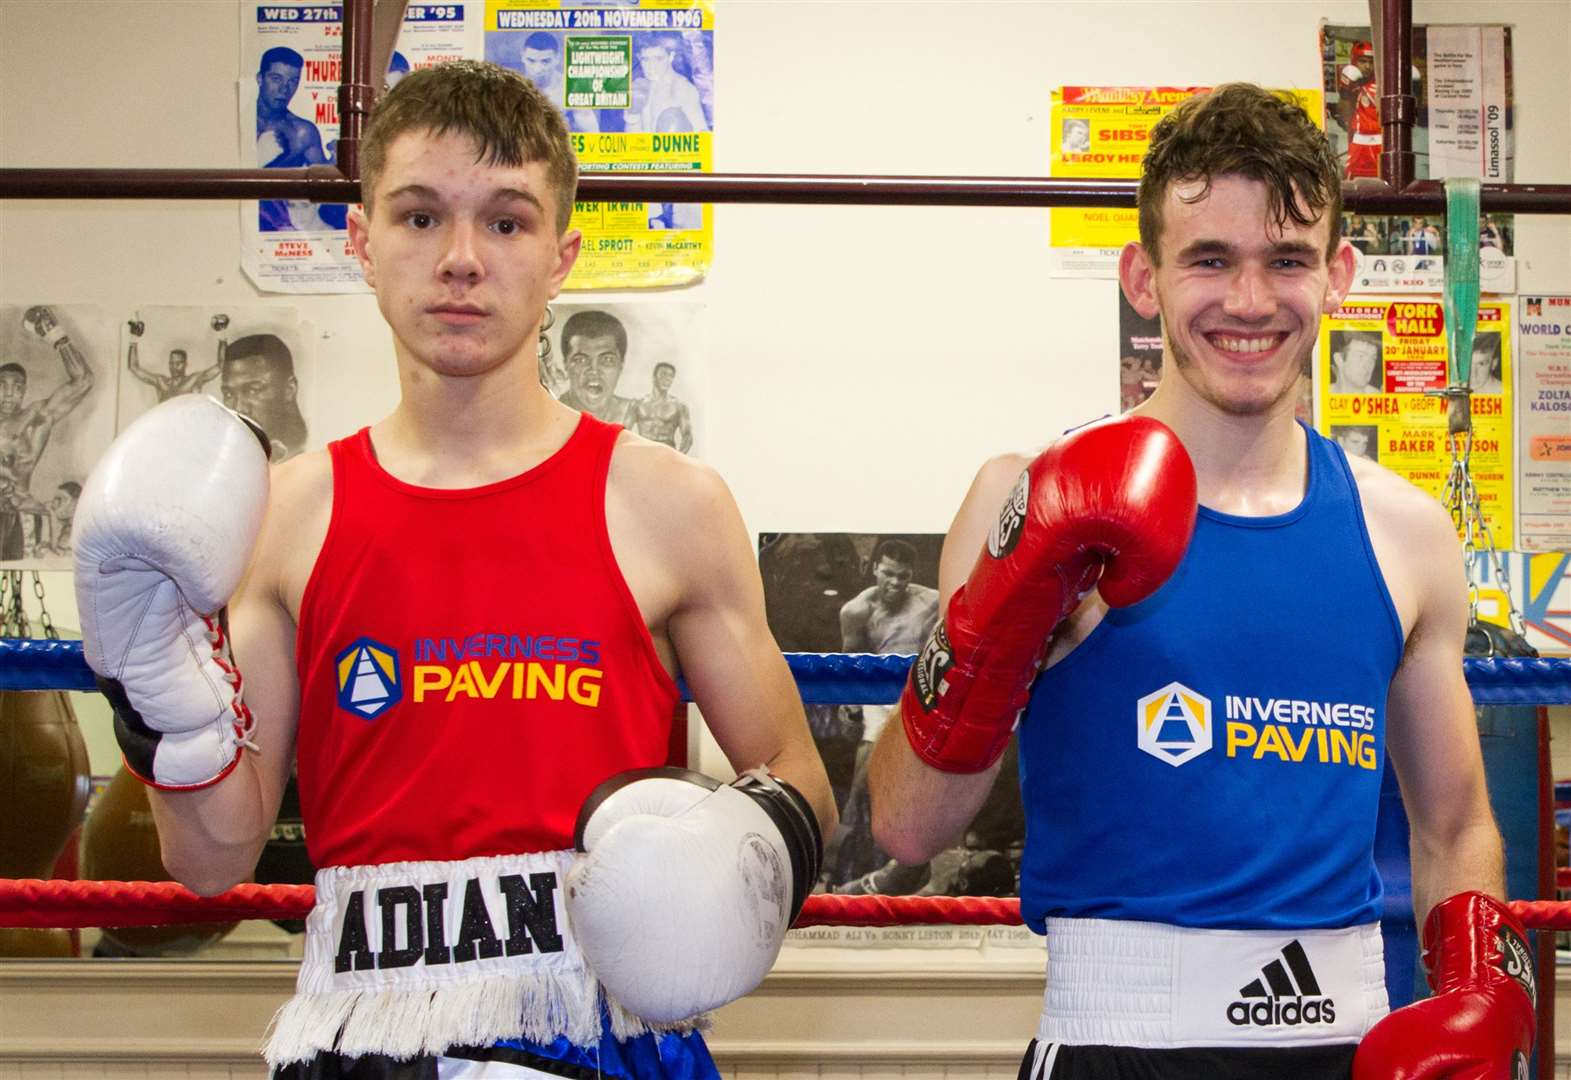 City boxers fight in Cyprus tournament